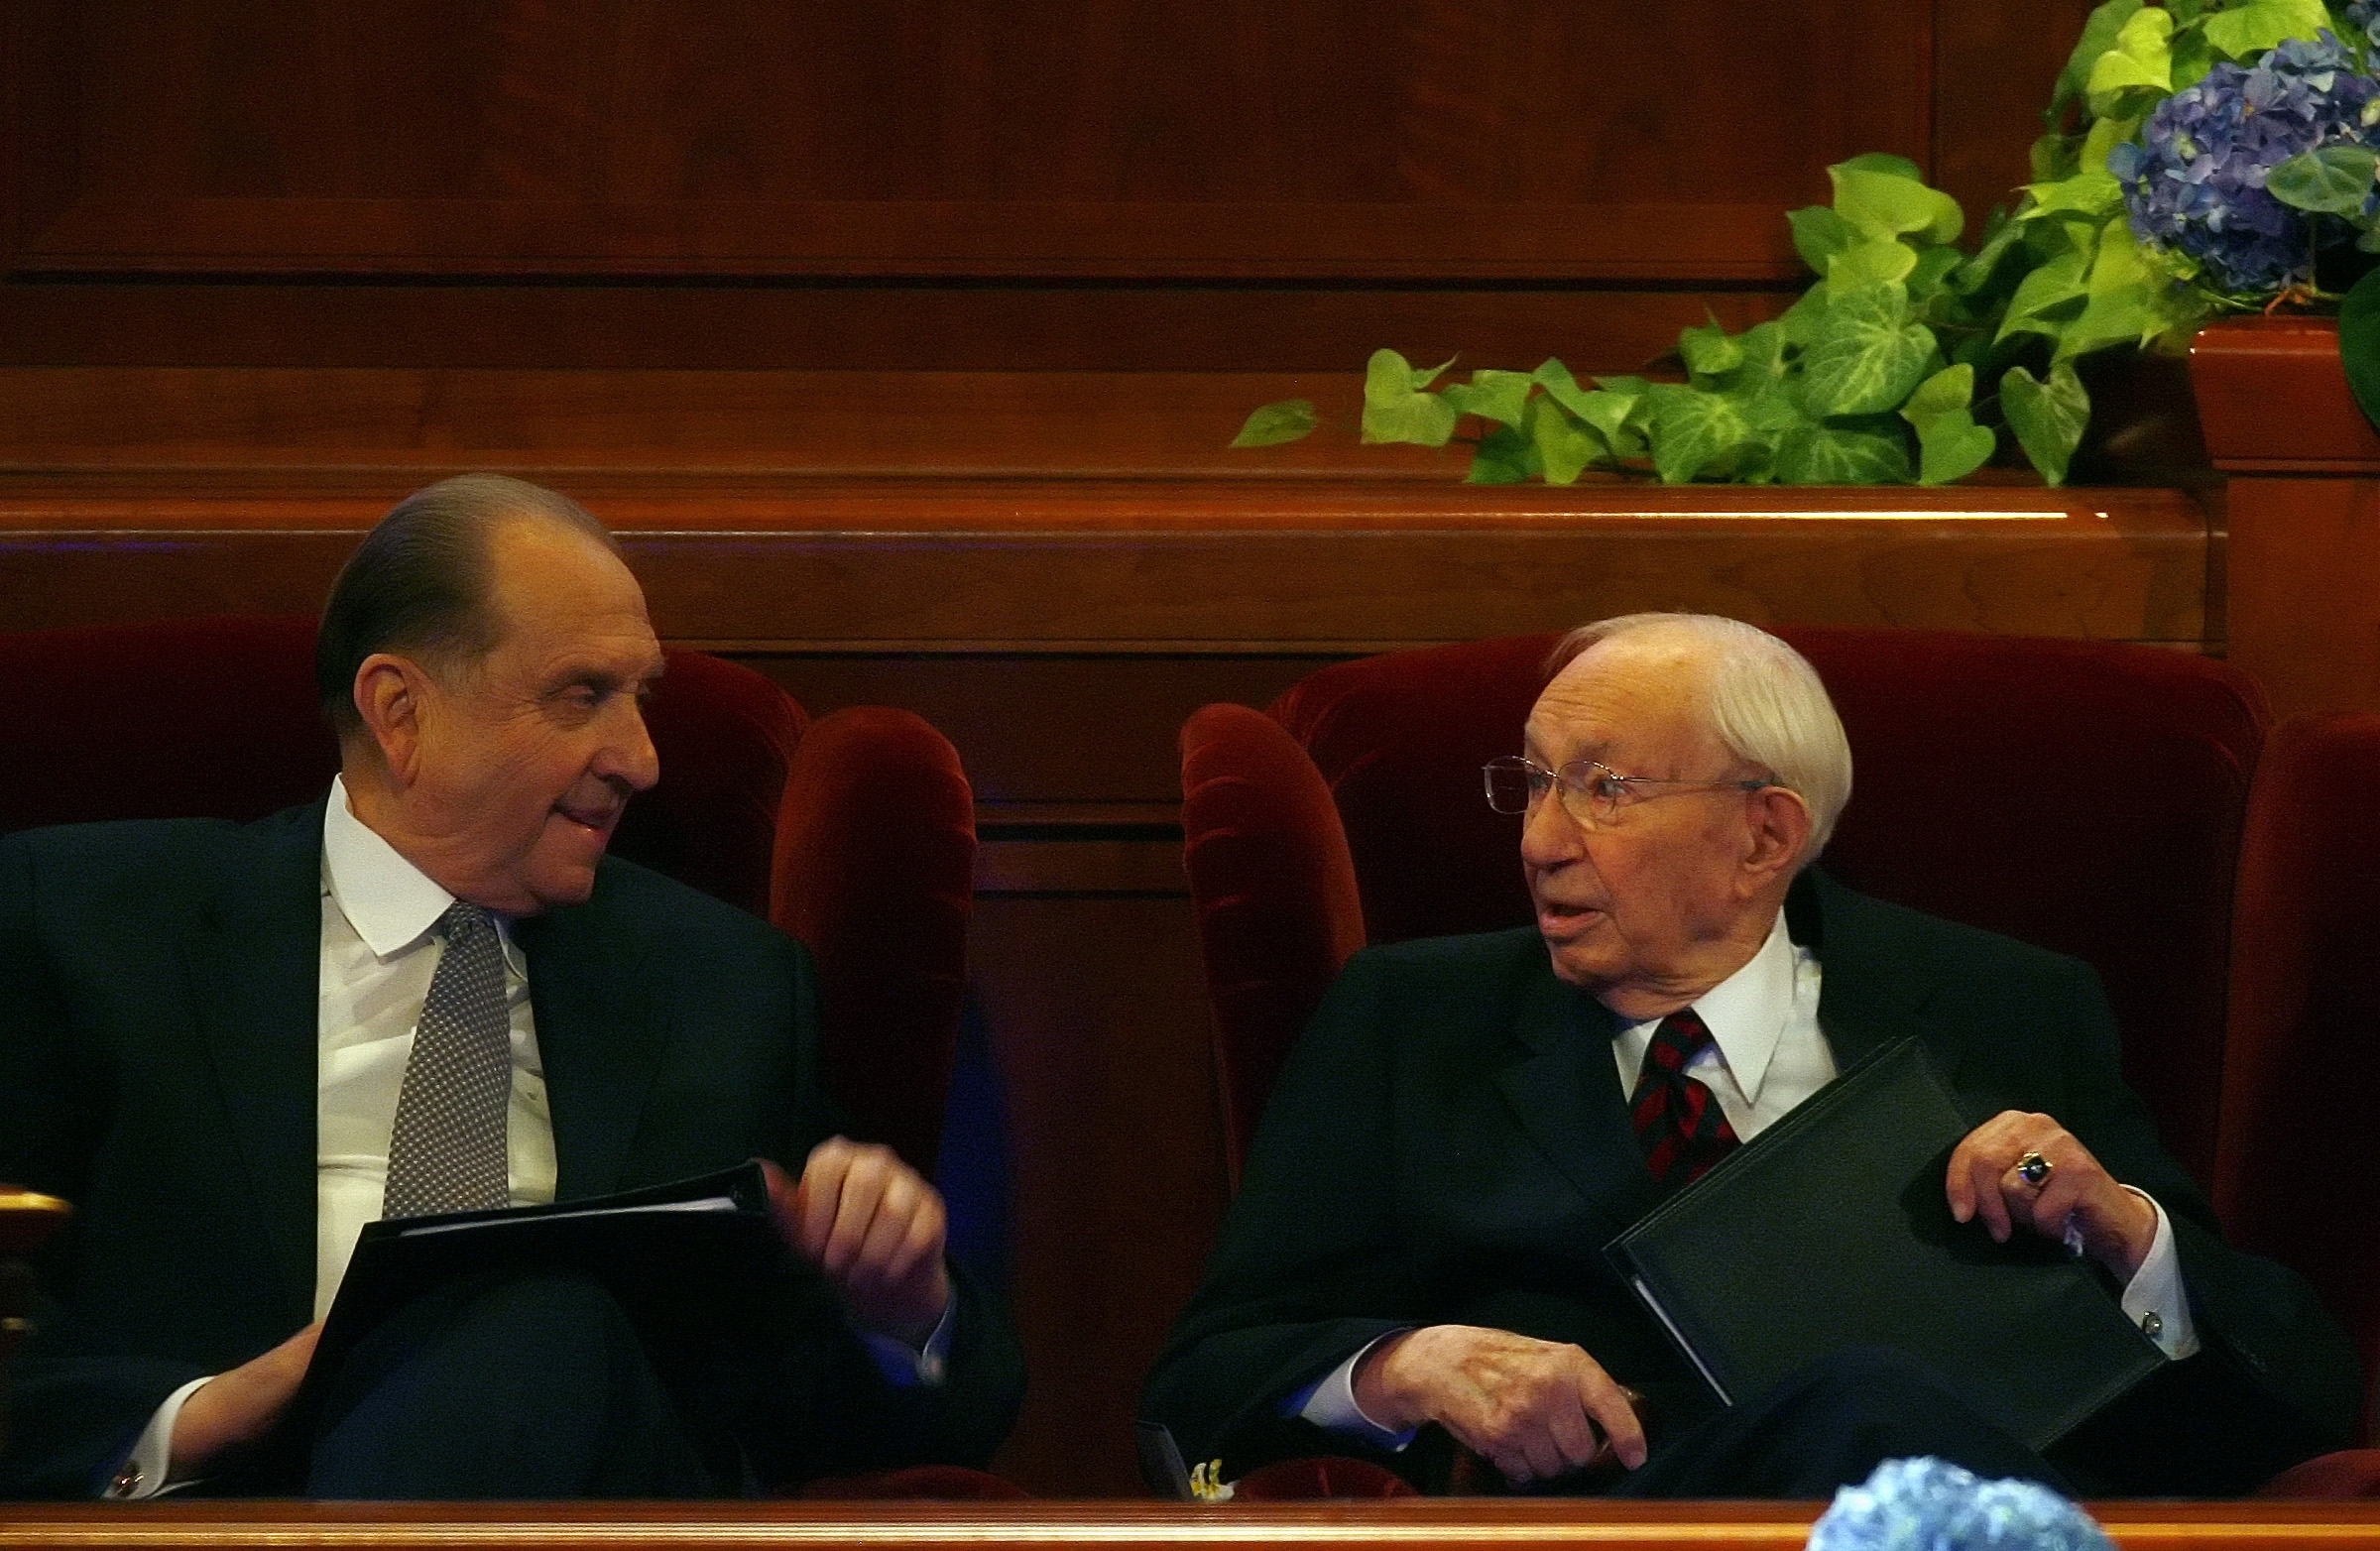 (Chris Detrick  |  The Salt Lake Tribune) President Gordon B. Hinckley talks with Thomas S. Monson after delivering his speech during the Semiannual General Conference in April 2007.